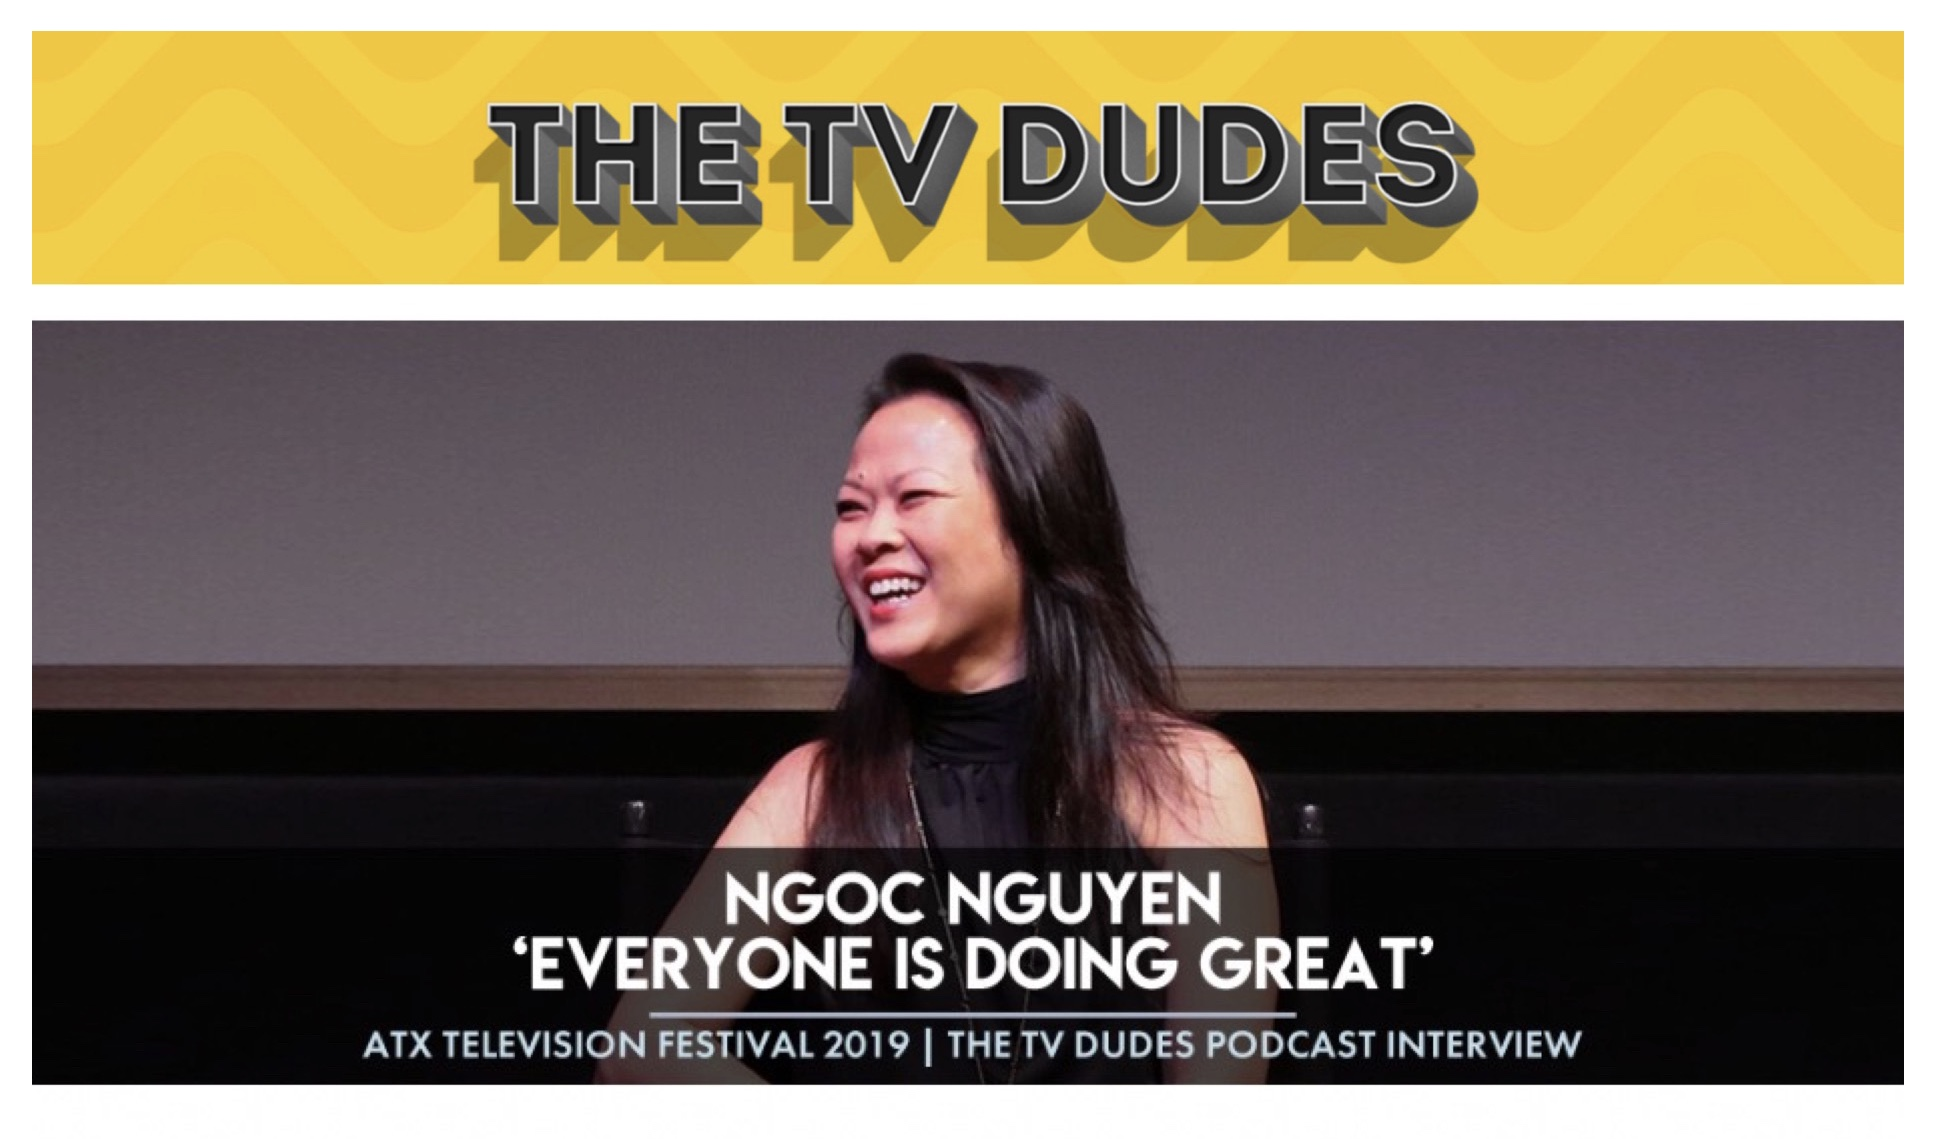 "- (The TV Dudes Podcast, June 3, 2019)Ngoc Nguyen, 'Everyone is Doing Great' - 2019 ATX (Austin) Televison Fest InterviewLes chats with producer Ngoc Nguyen about 'Everyone is Doing Great', how she found her career in storytelling & more. Created by James Lafferty and Stephen Colletti, ""EDG"" premiered Episodes 1 & 2 at the 2018 & 2019 ATX TV Fest respectively. (Listen to the Podcast Here.)"